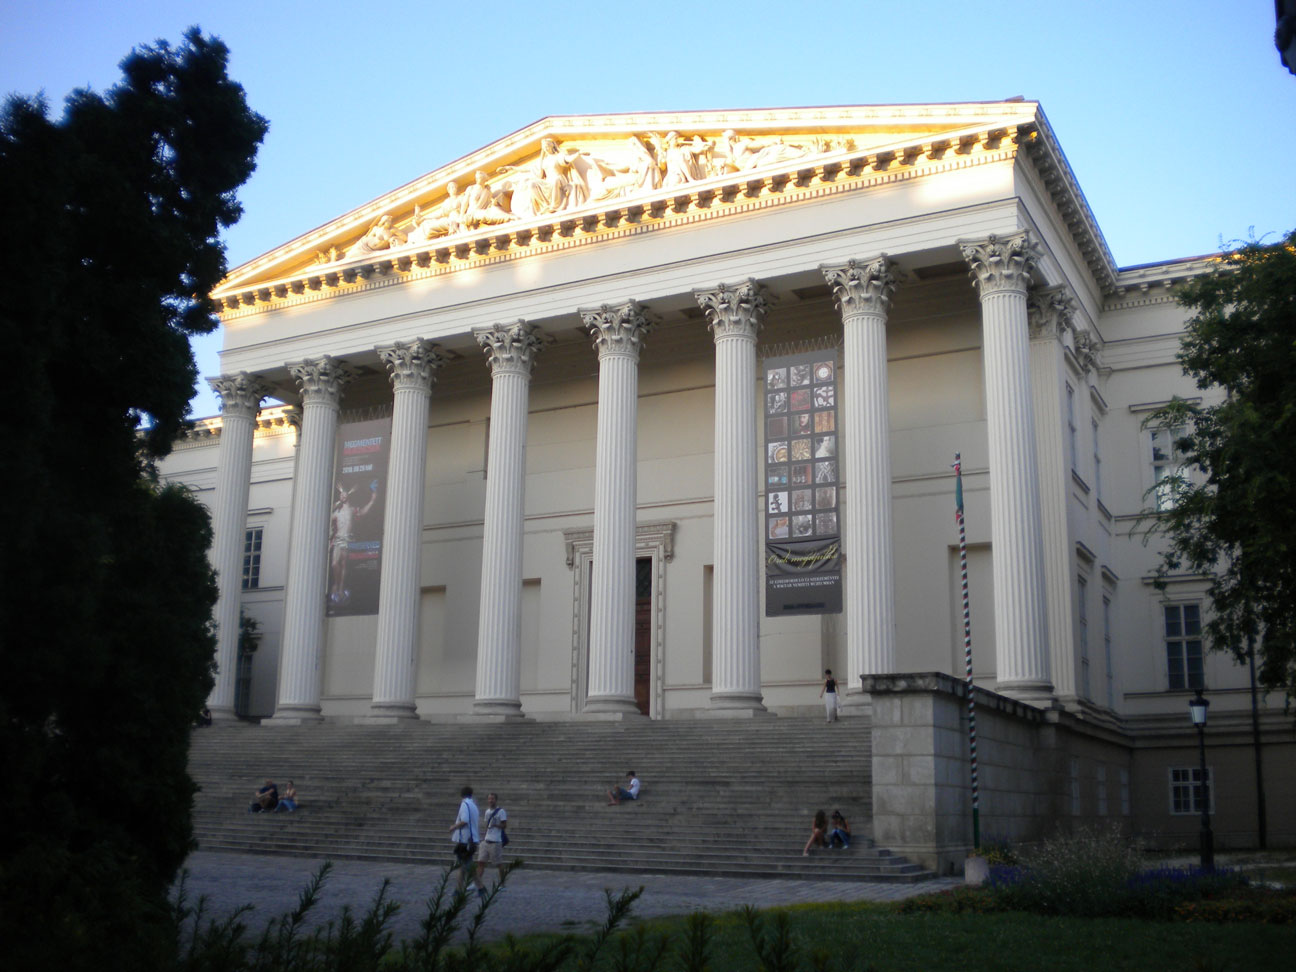 The National Museum, where 'Abdu'l-Bahá gave a lecture on 14th April 1913 (c) Magyarországi Bahá'í Közösség www.bahai.hu